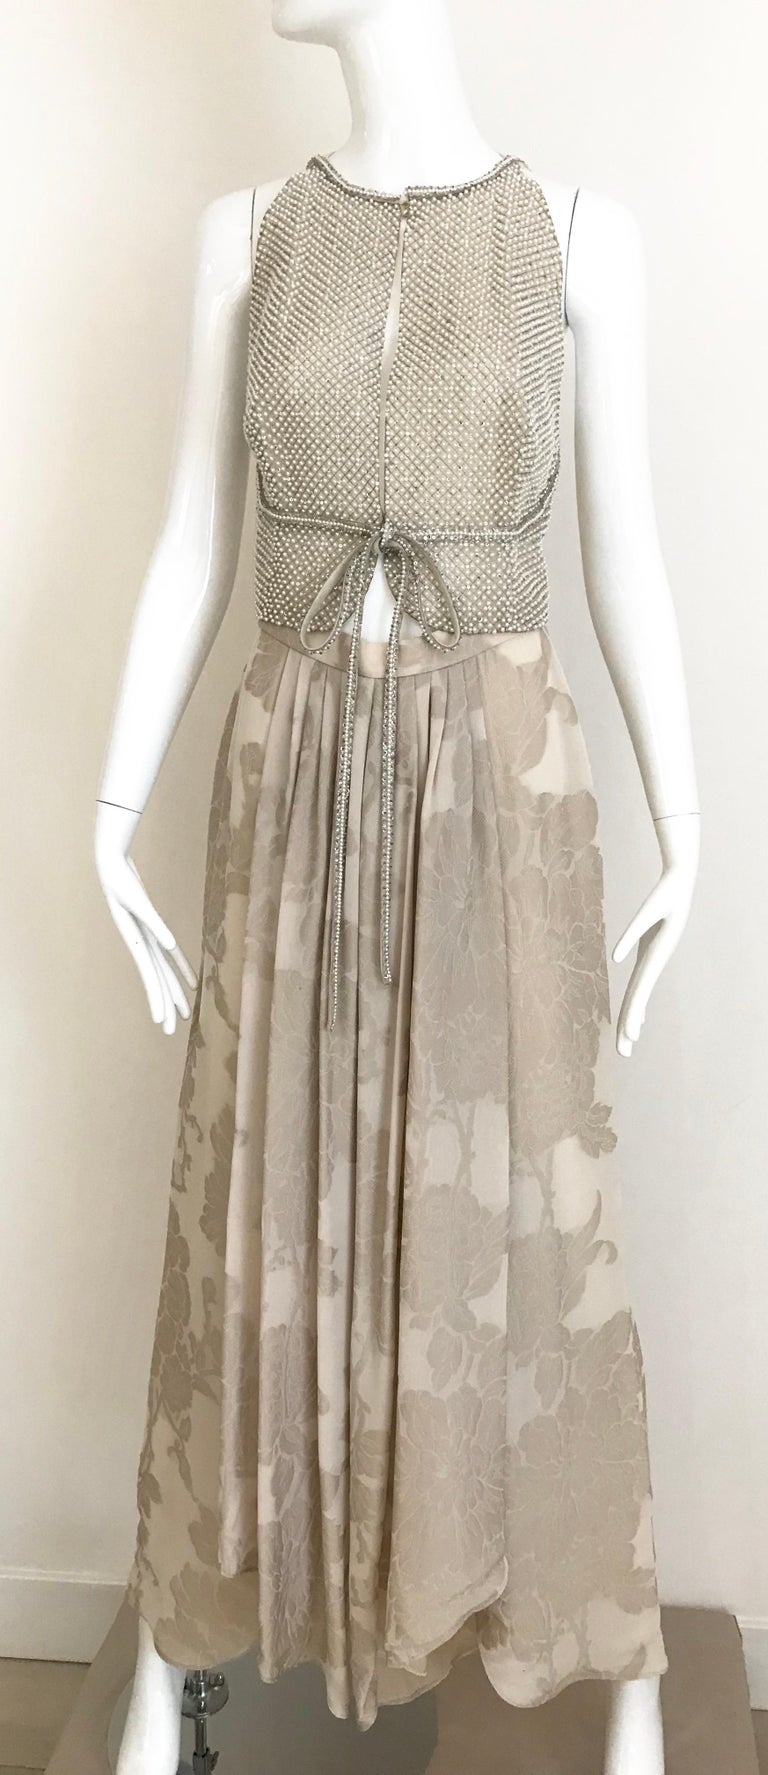 Incredible Giorgio Armani 3 pcs Creme beaded vest top, heavy crystal encrusted top and beautiful Creme silk jacquard pants. Pants measurement: Waist: 26 inches/ Hip: 38 inches/ Pants length: 44 inches Pearl Vest: Bust: 32 inches/ Top length: 18